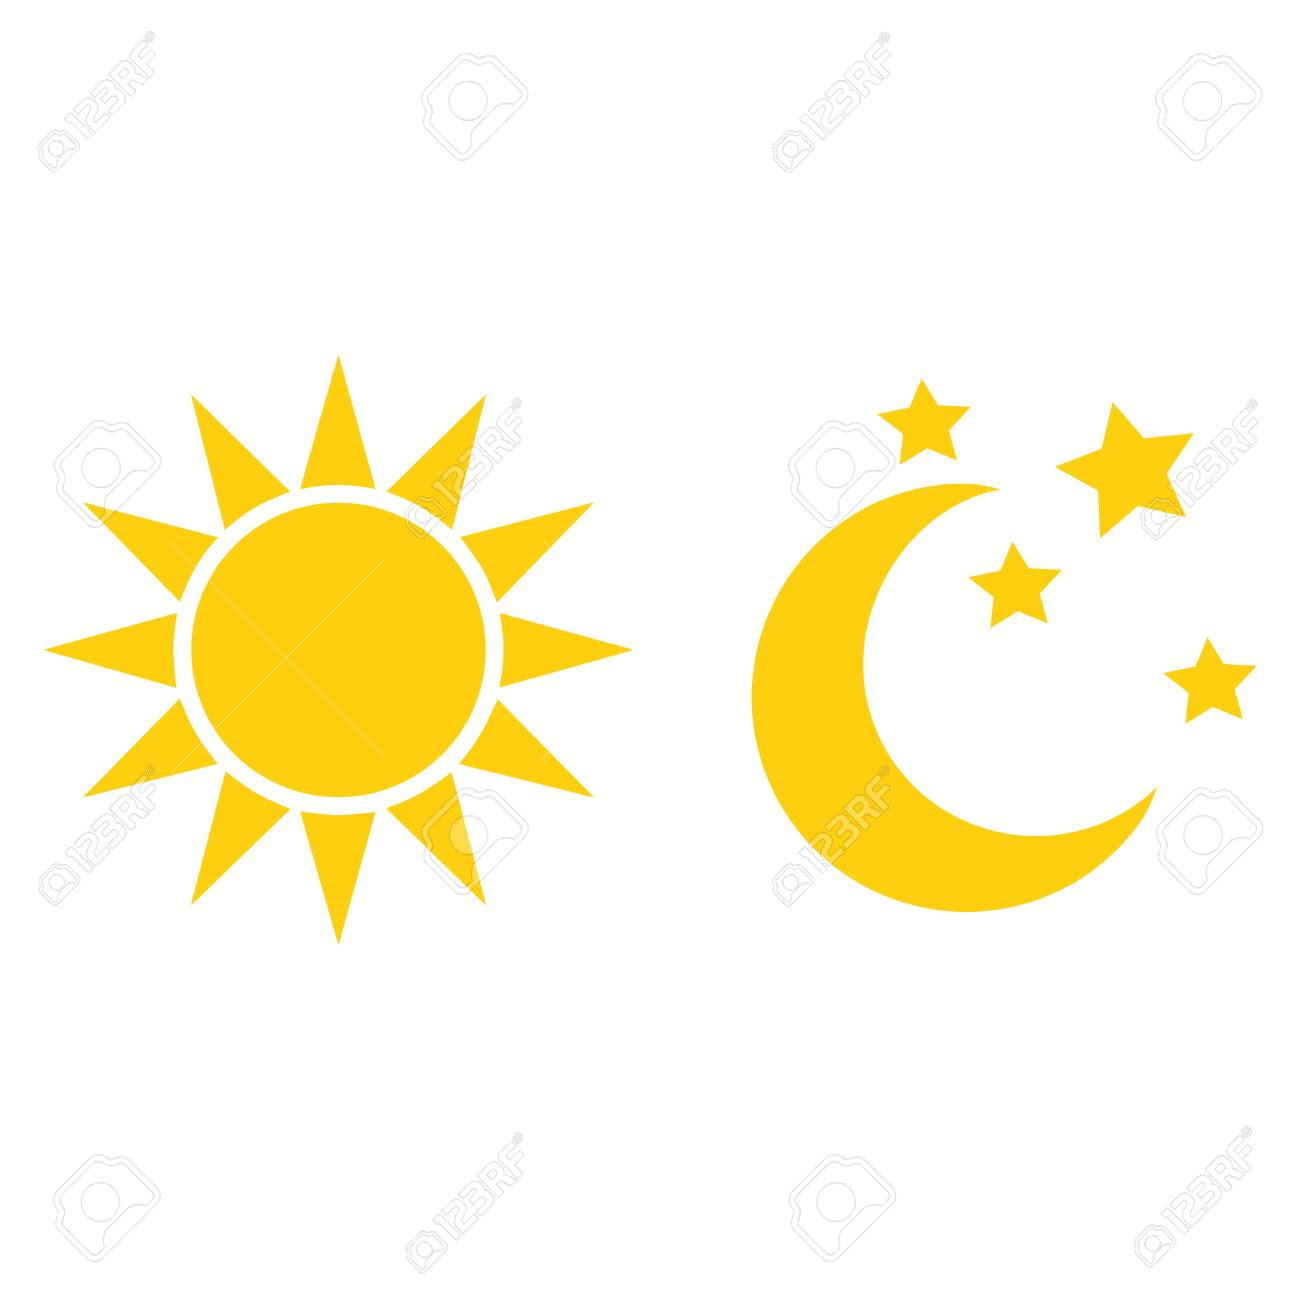 vector sun and moon flat icon royalty free cliparts vectors and rh 123rf com Anime Sun and Moon Sun and Moon Outline